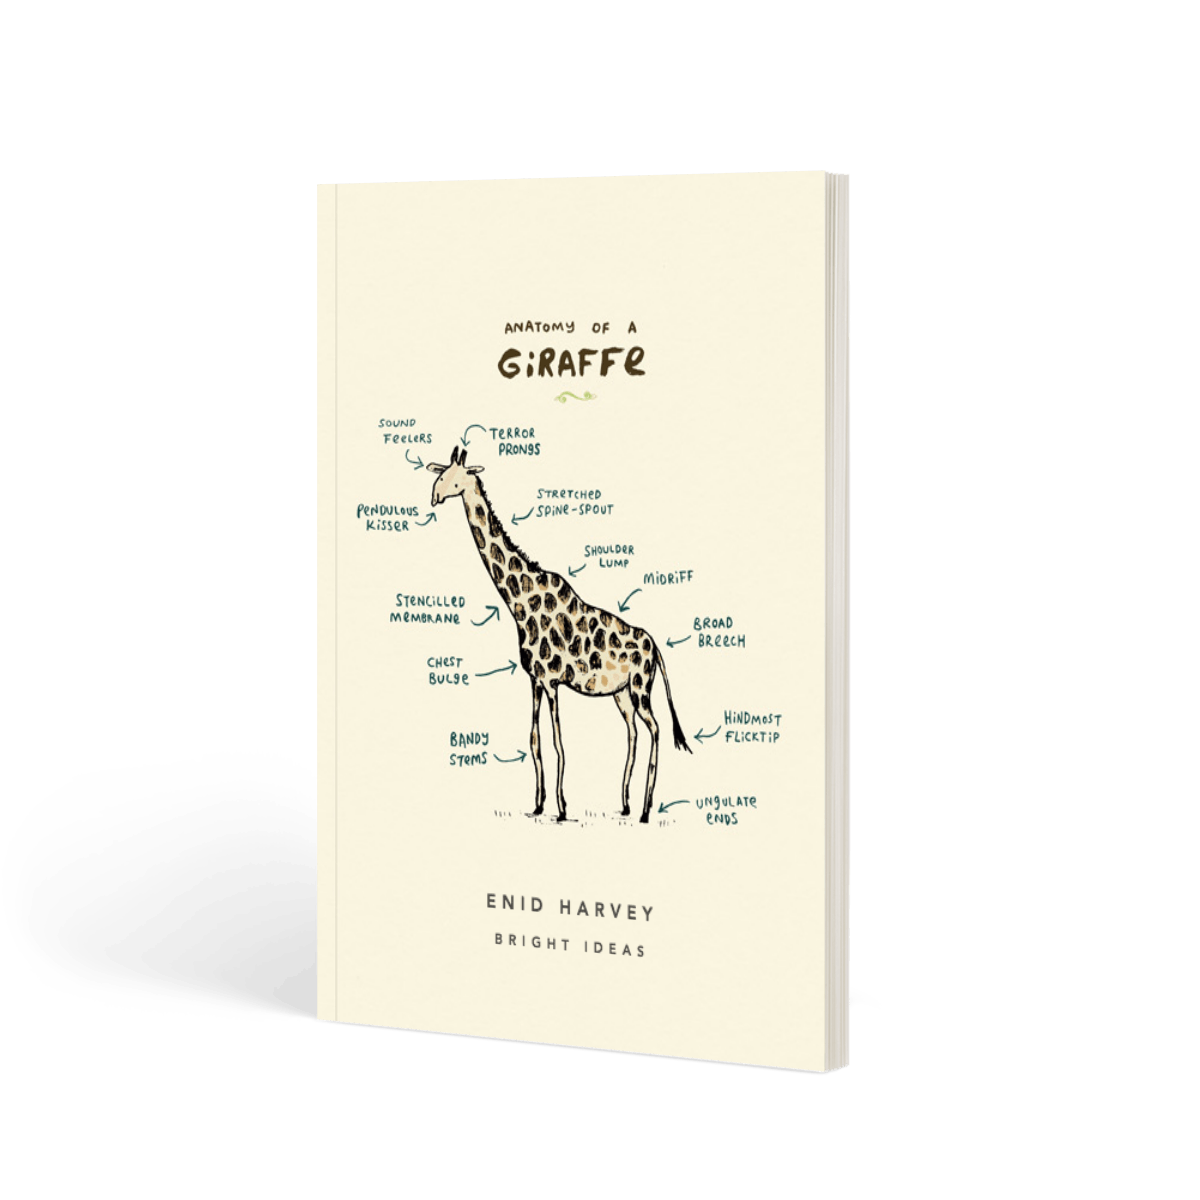 Https%3a%2f%2fwww.papier.com%2fproduct image%2f10054%2f6%2fanatomy of a giraffe 2556 front 1470655107.png?ixlib=rb 1.1